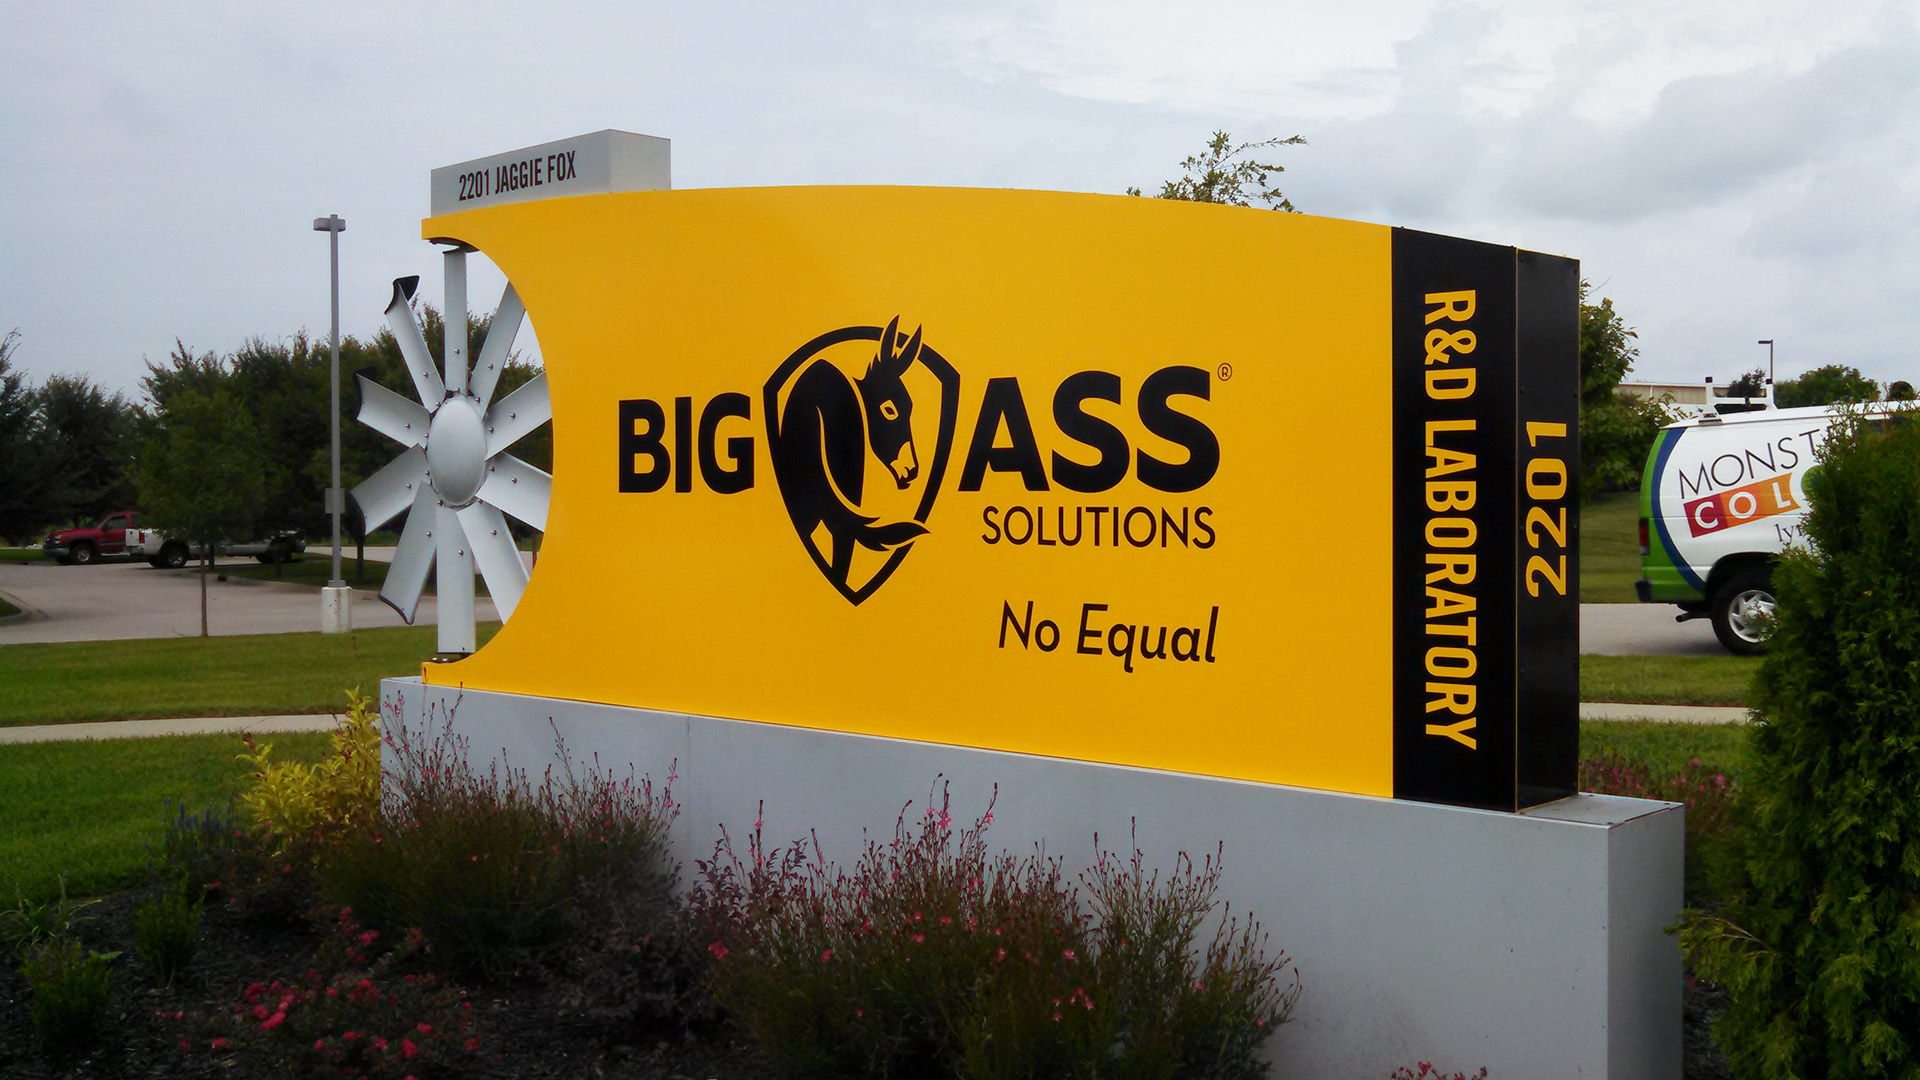 Big Ass Solutions Outdoor company sign